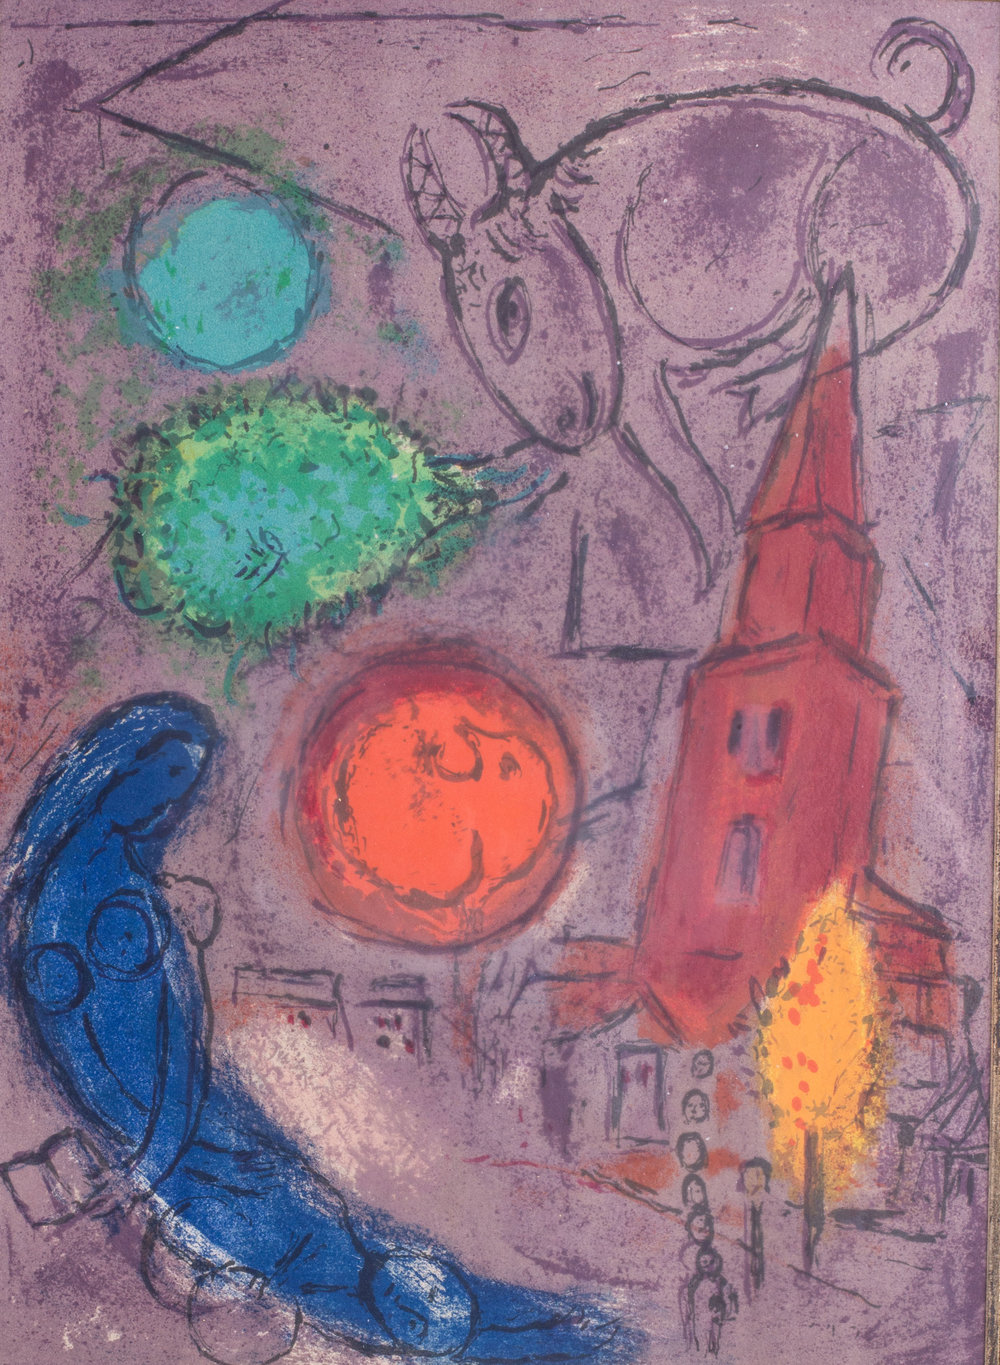 Marc Chagall (Russian-French, 1887-1985)    'Saint Germain des Pres, 1953'     Price: £5,200